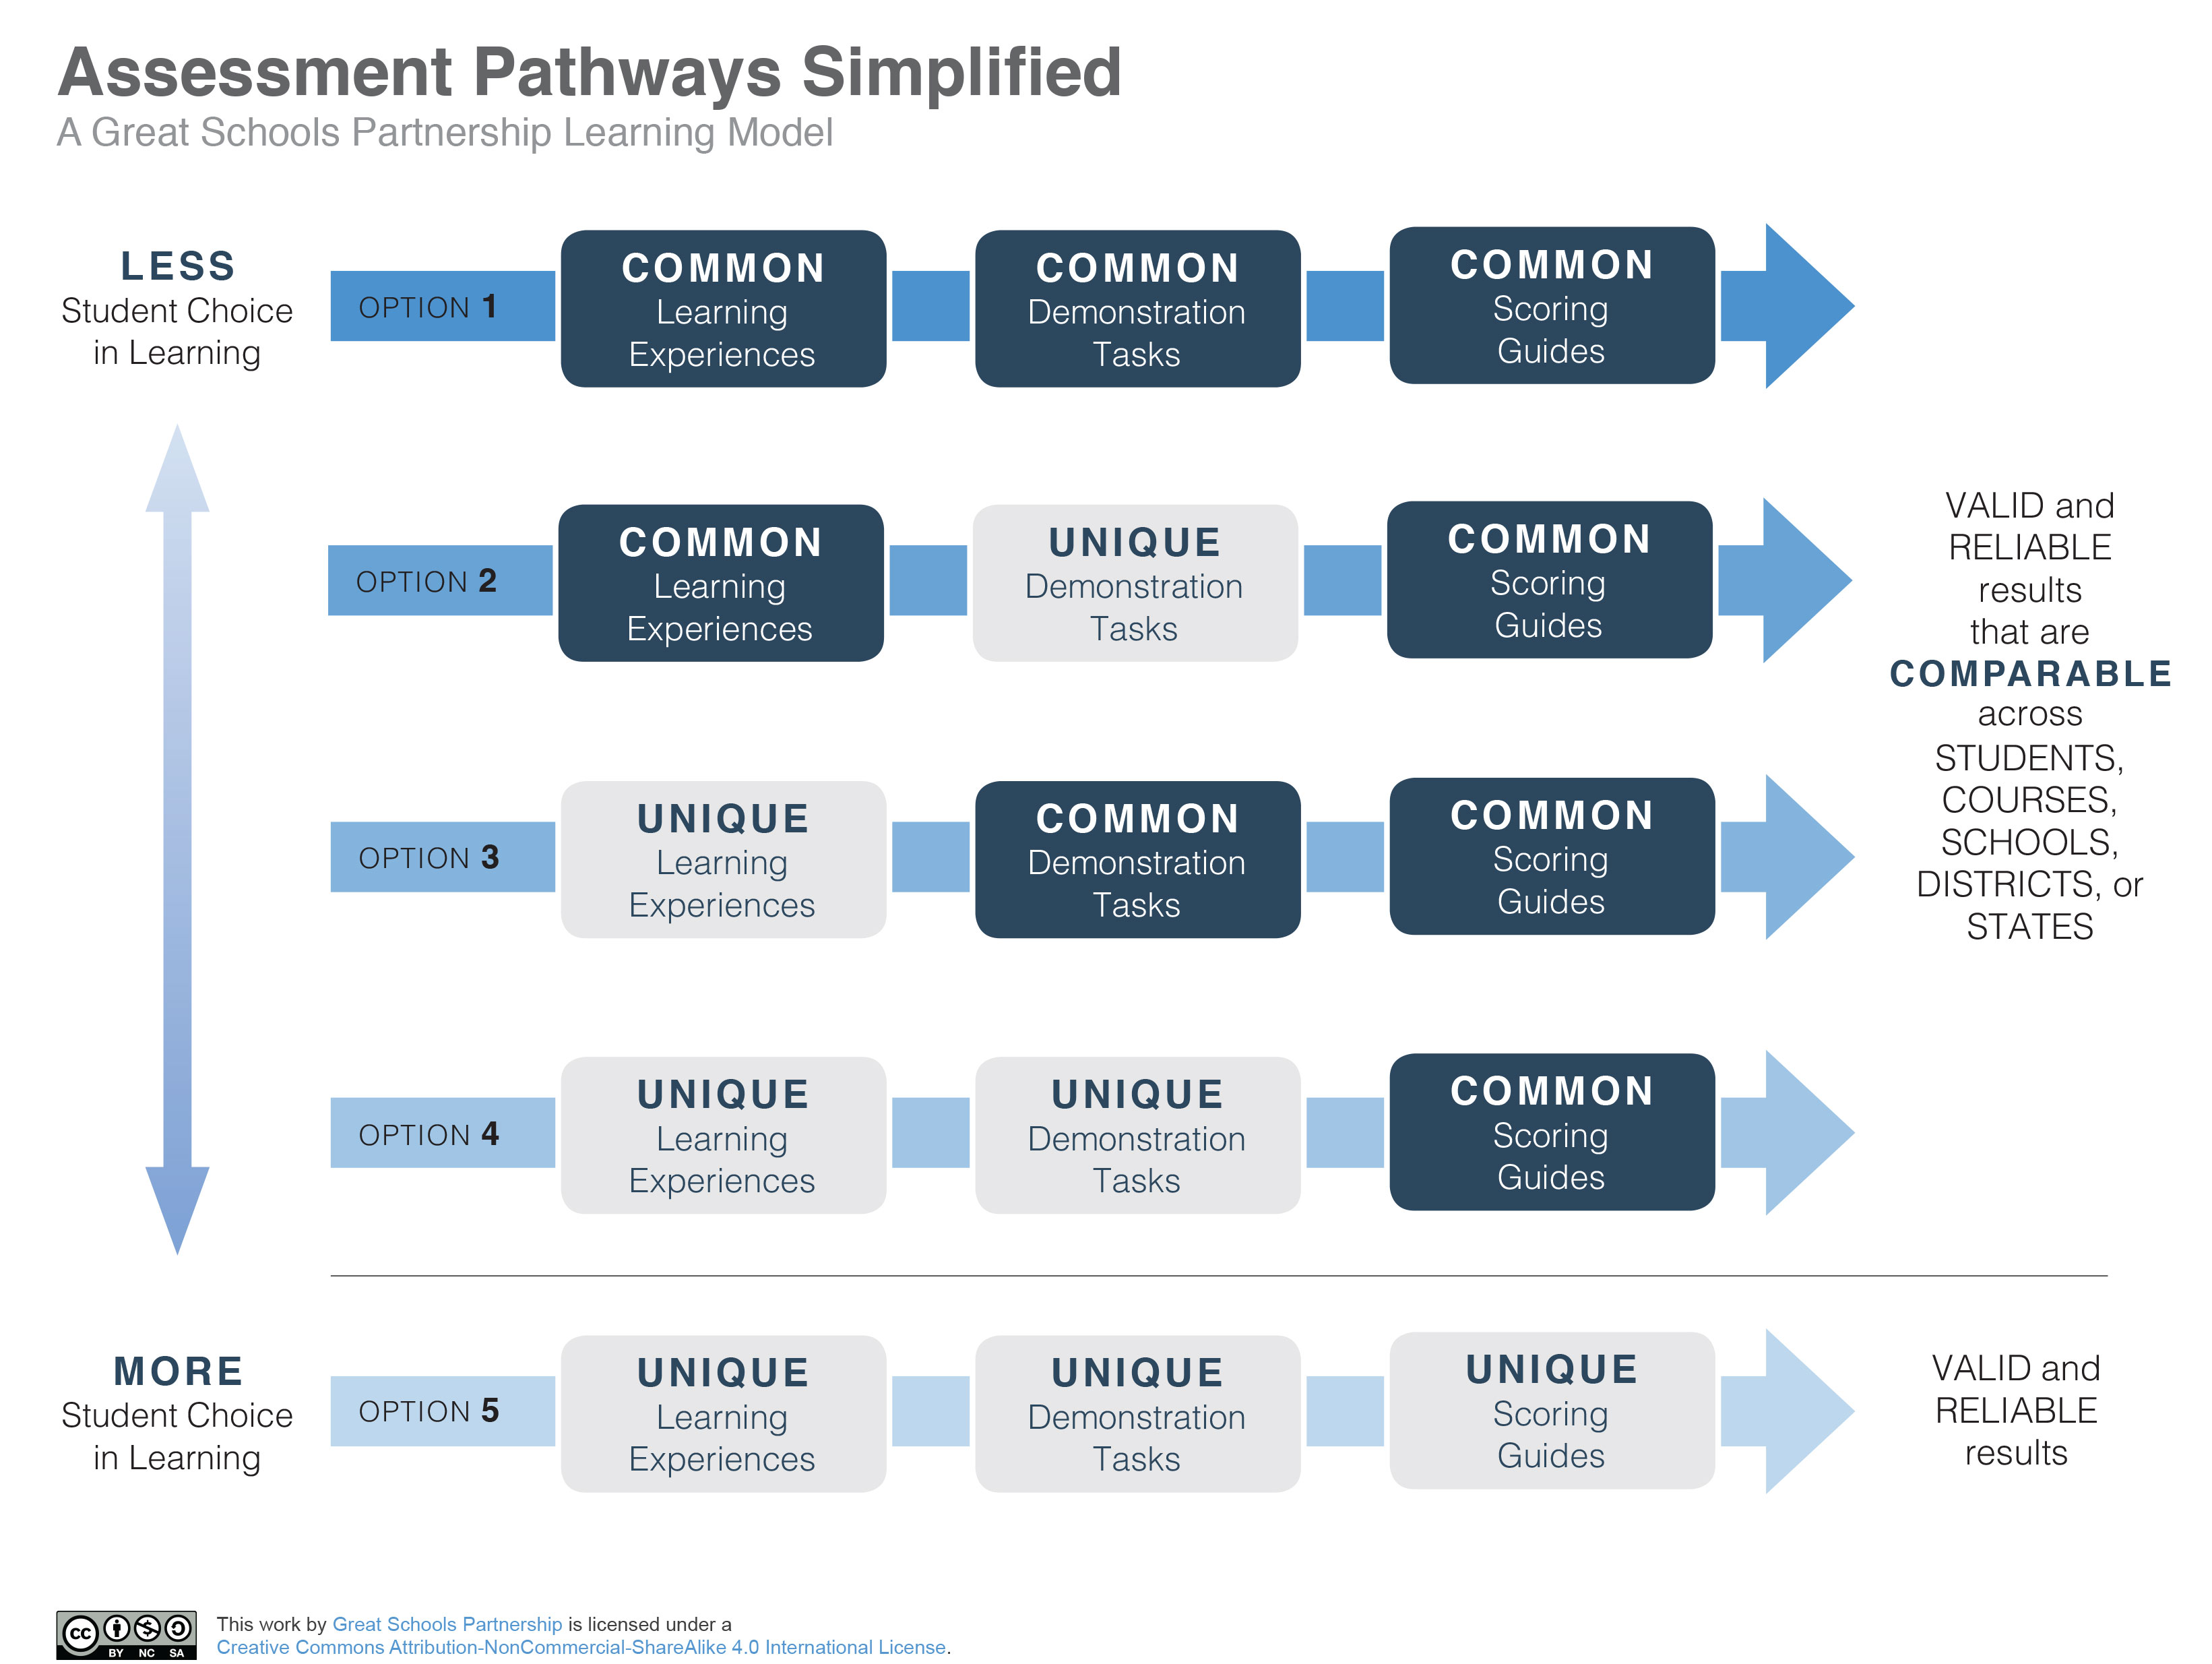 Assessment Pathways Simplified